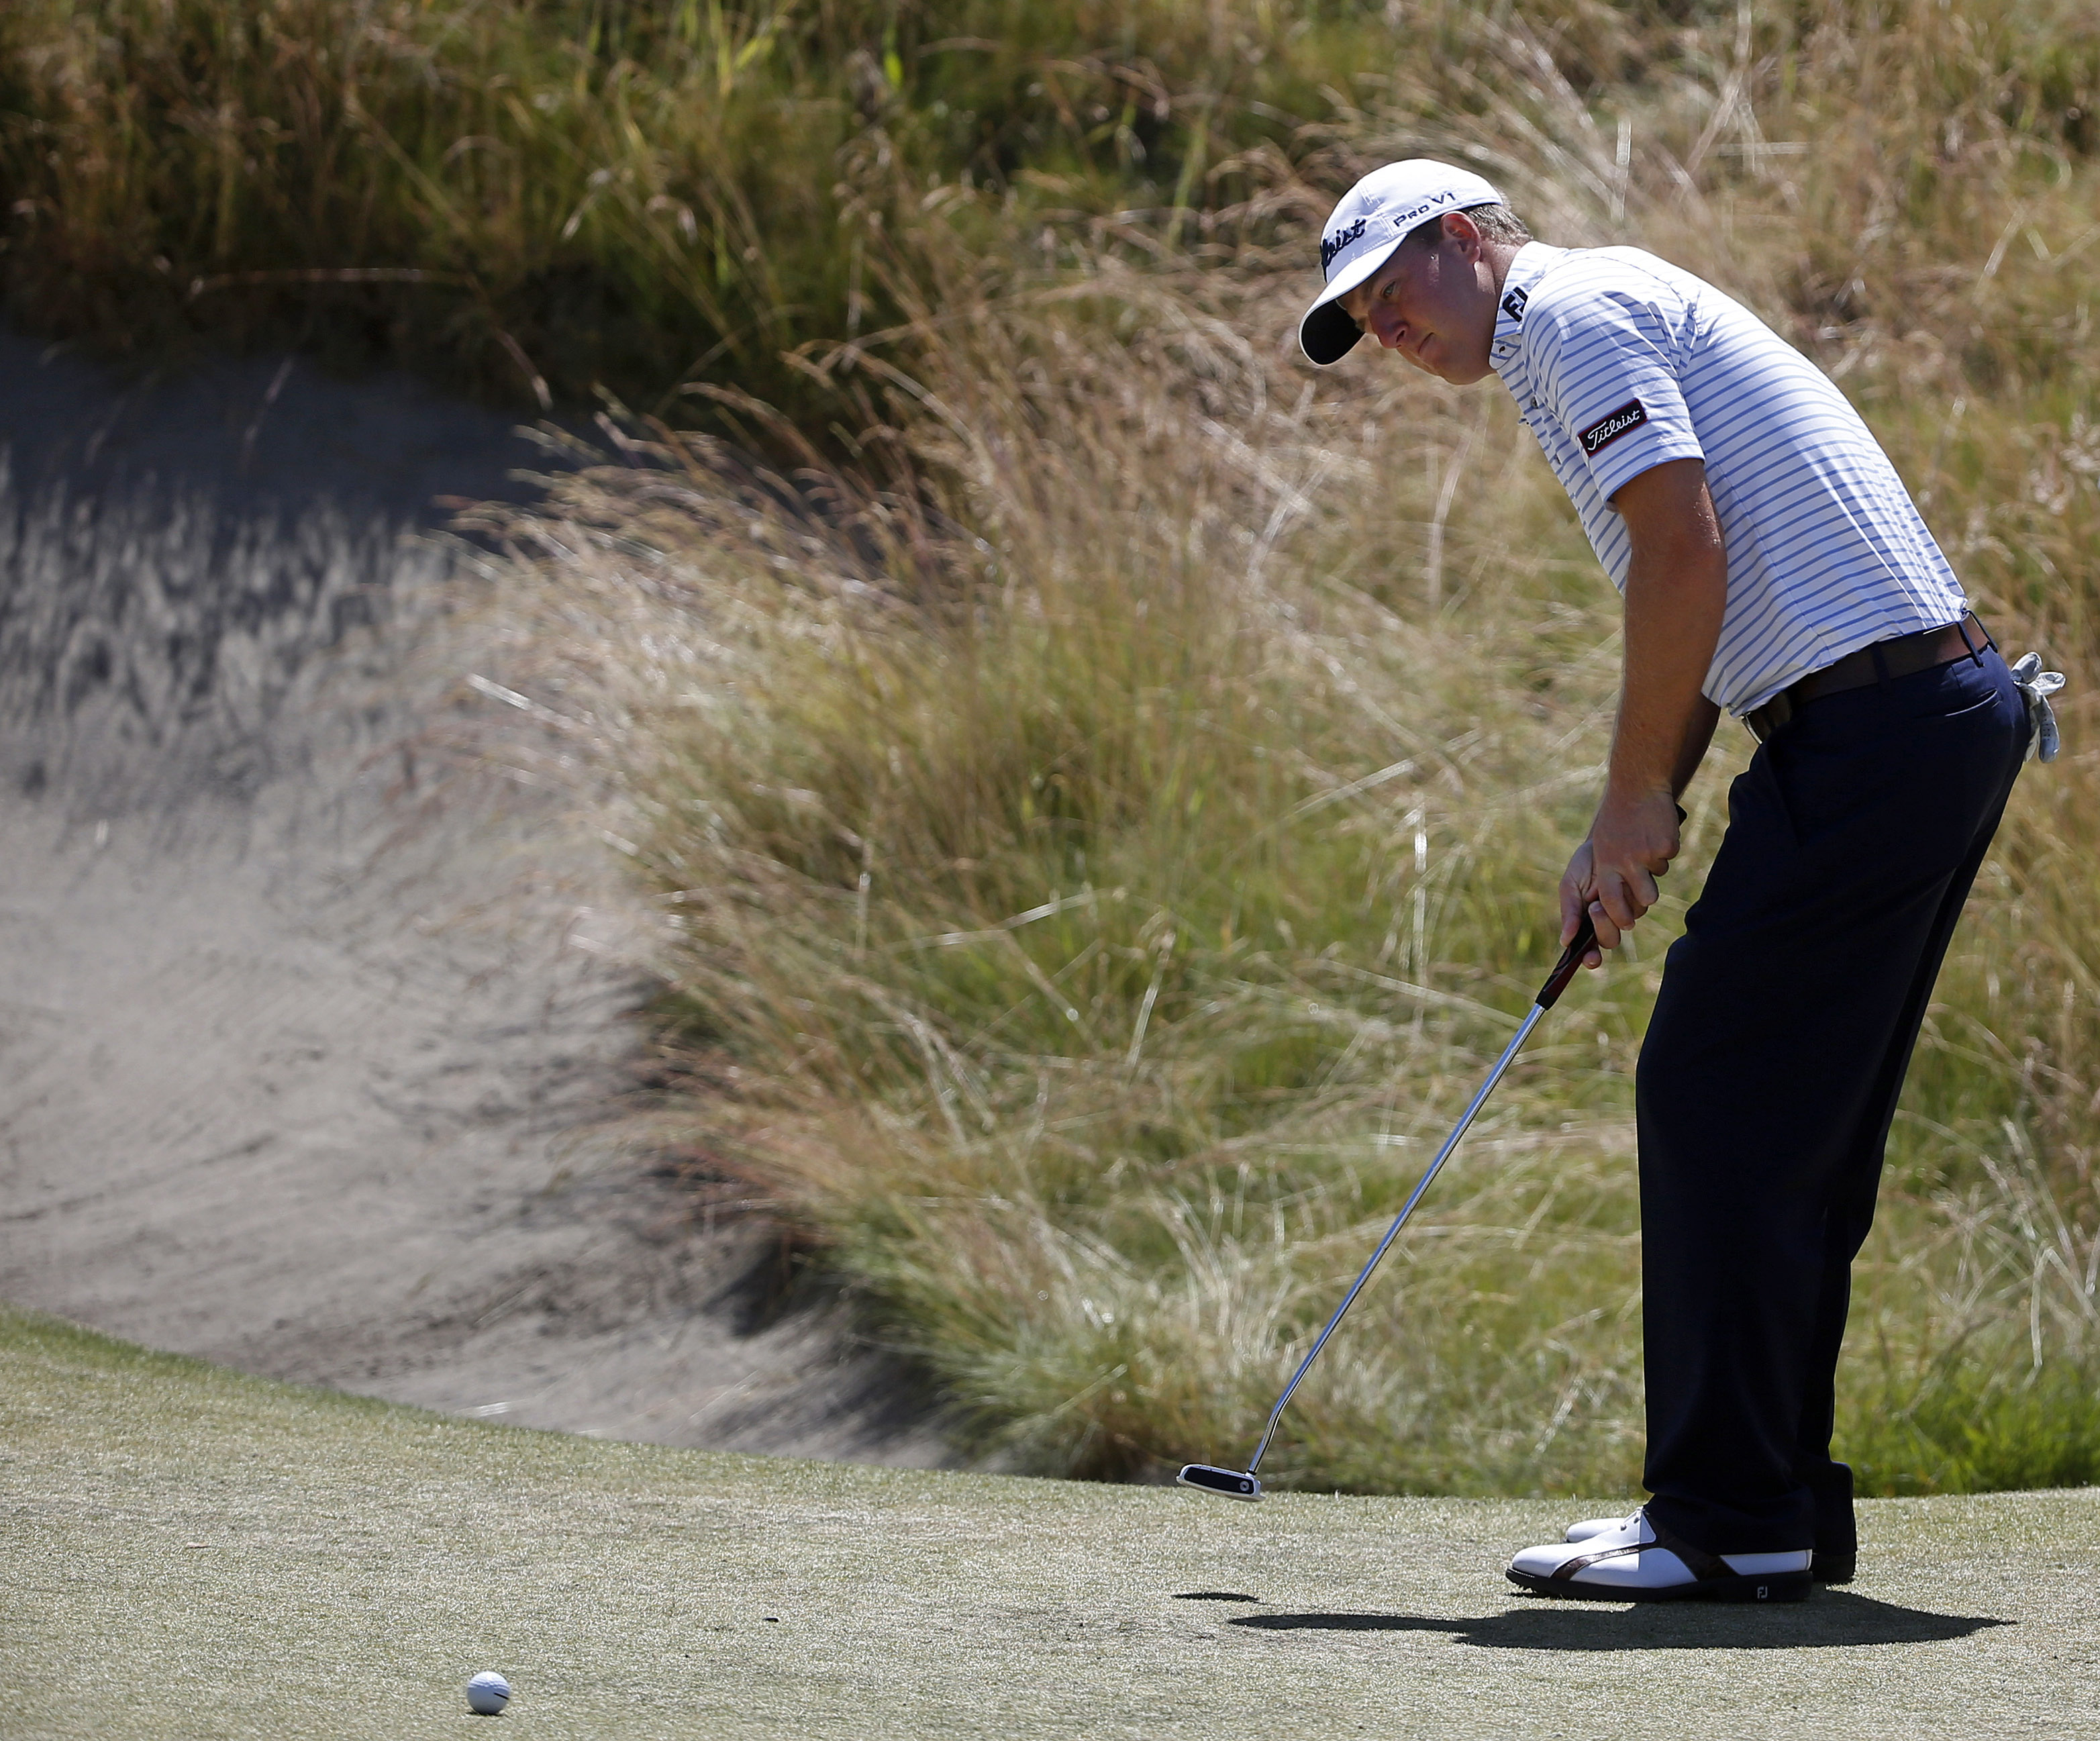 Tom Hoge putts on the 10th hole during a practice round for the U.S. Open golf tournament at Chambers Bay on Wednesday, June 17, 2015 in University Place, Wash. (AP Photo/Lenny Ignelzi)